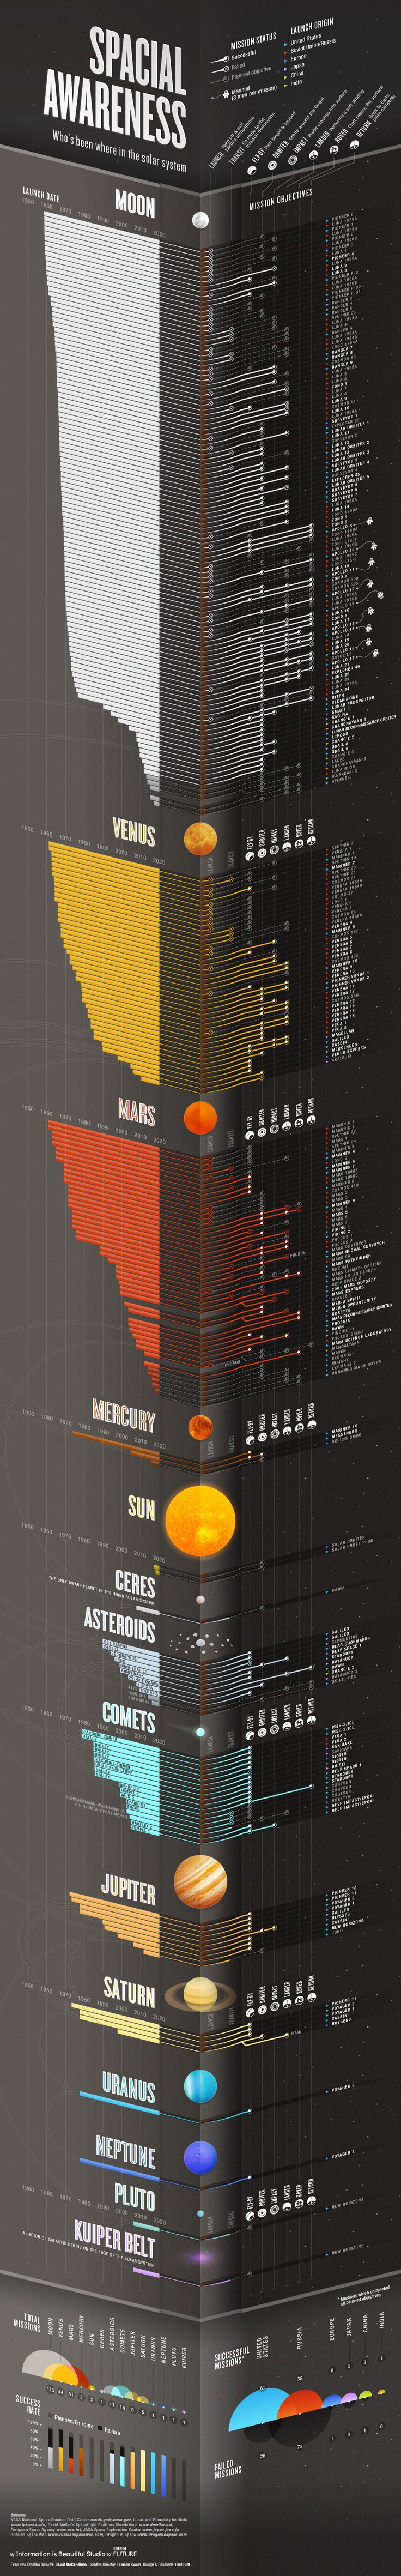 Where have we been in space? infographic.